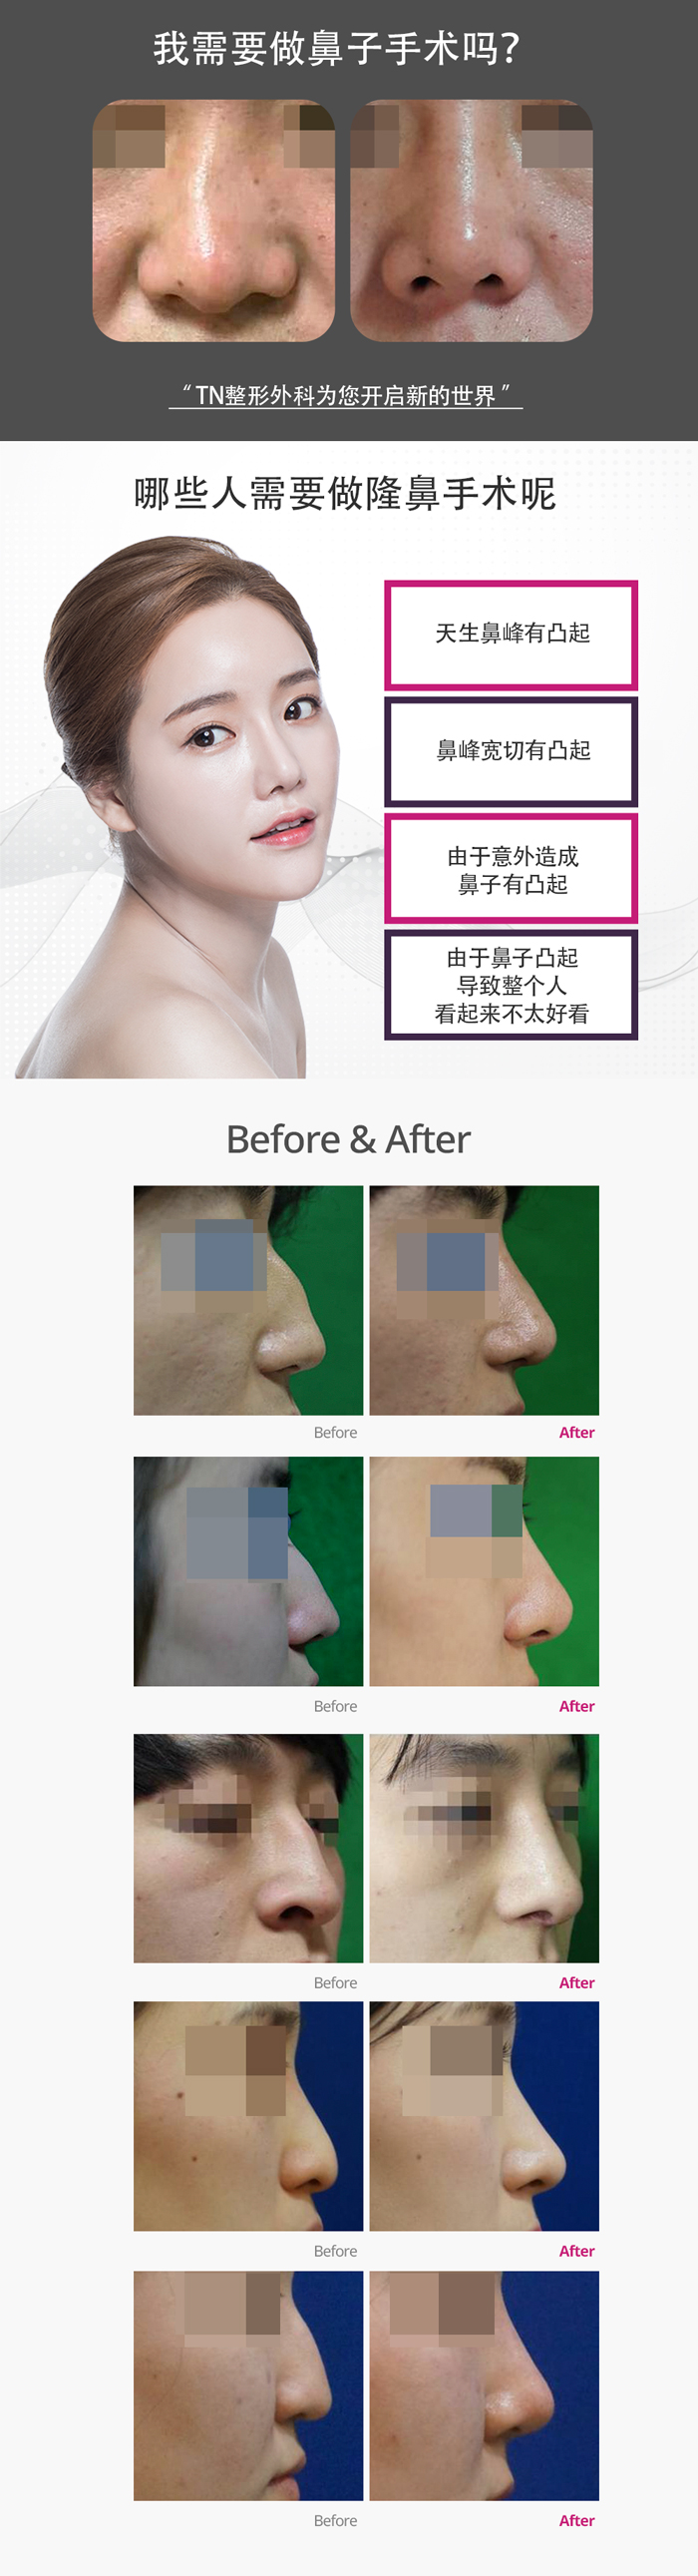 韩国TN整形外科 X AllaboutMEI 隆鼻术 特价活动 / hump nose surgery with the lowest price in All about MEI